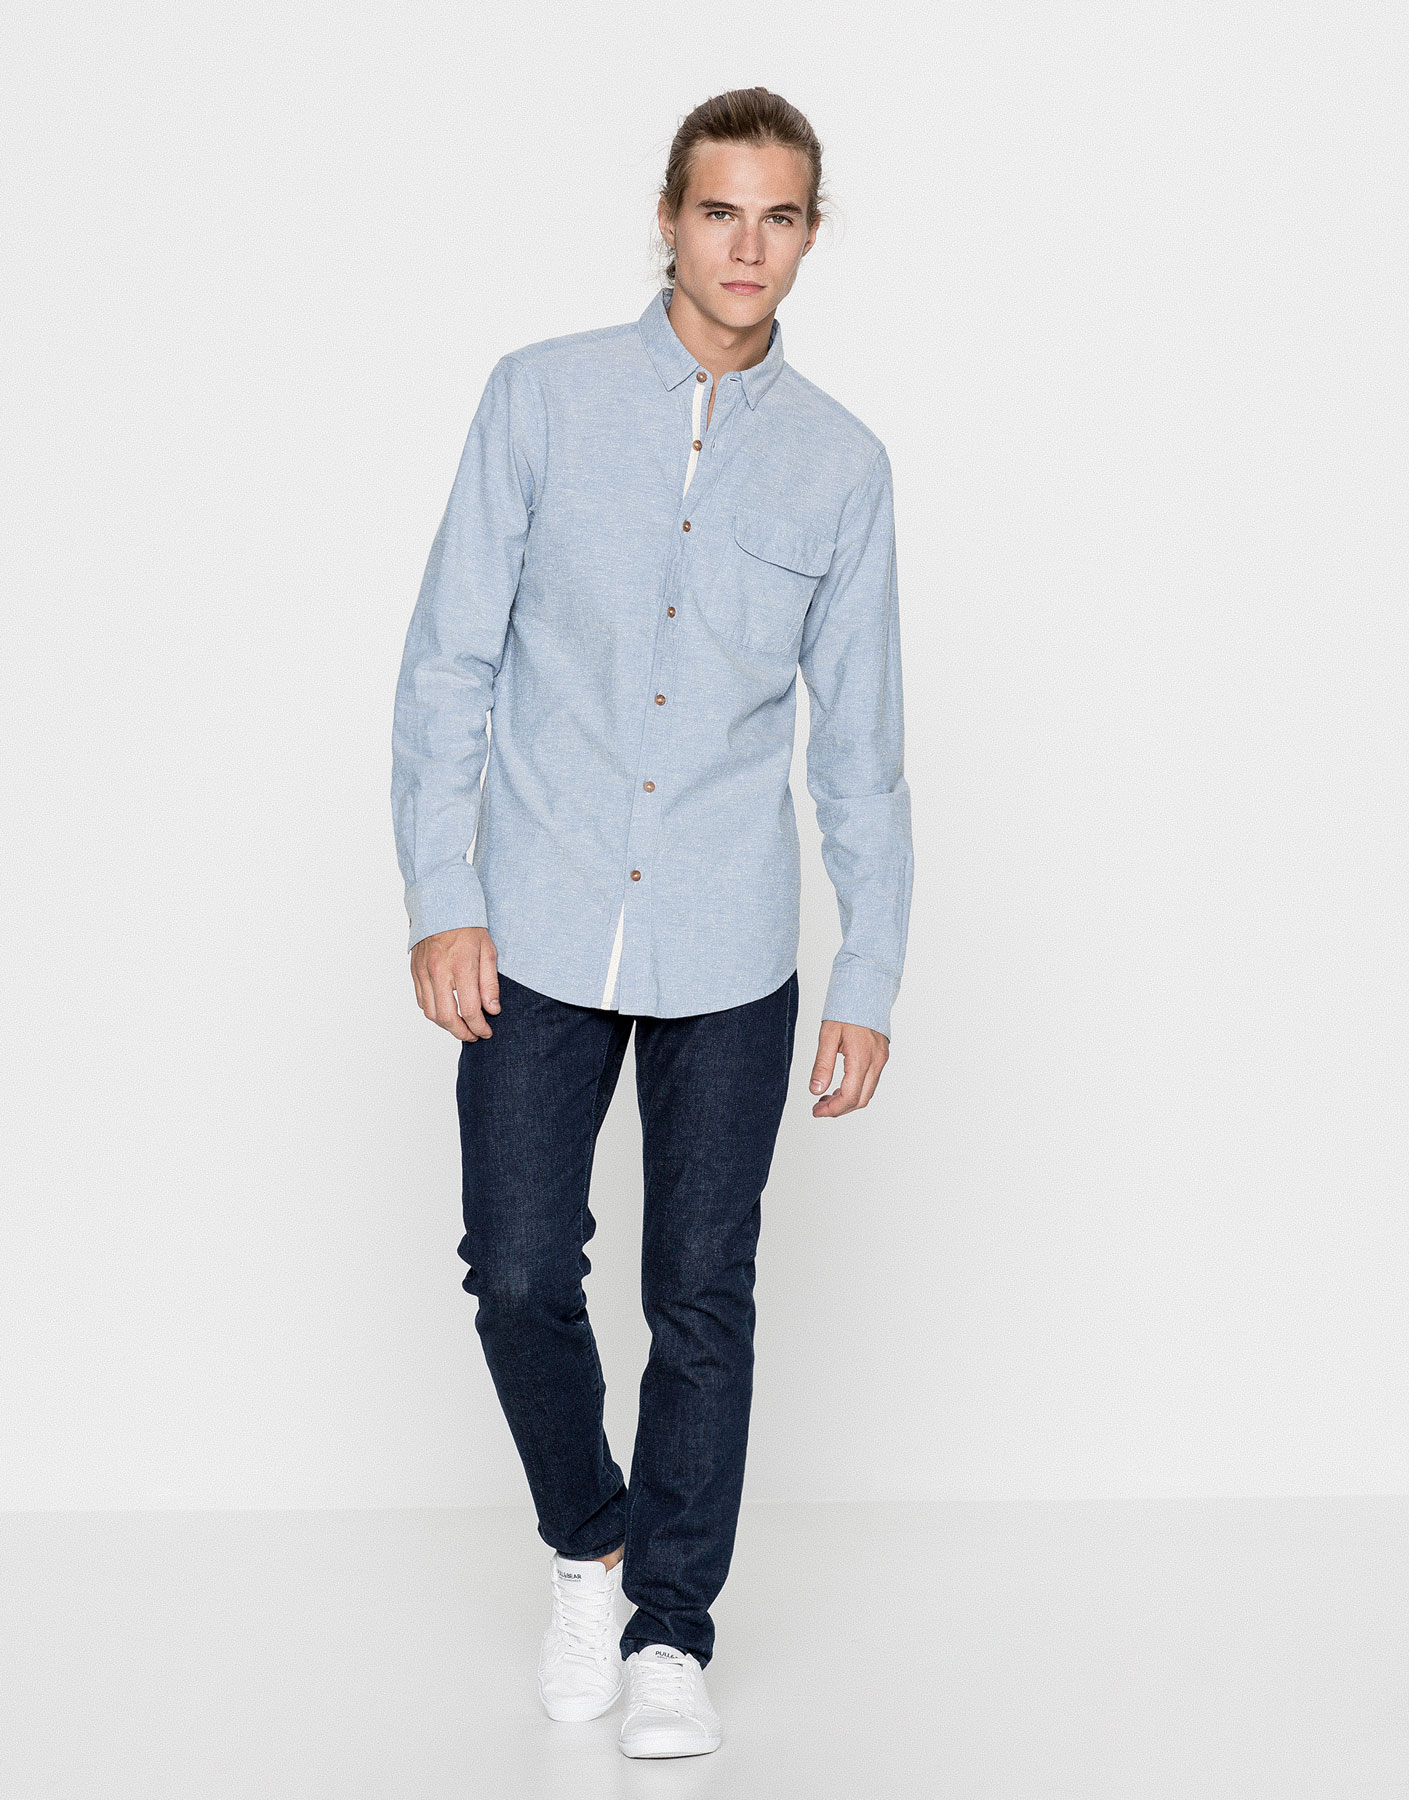 Naps oxford shirt